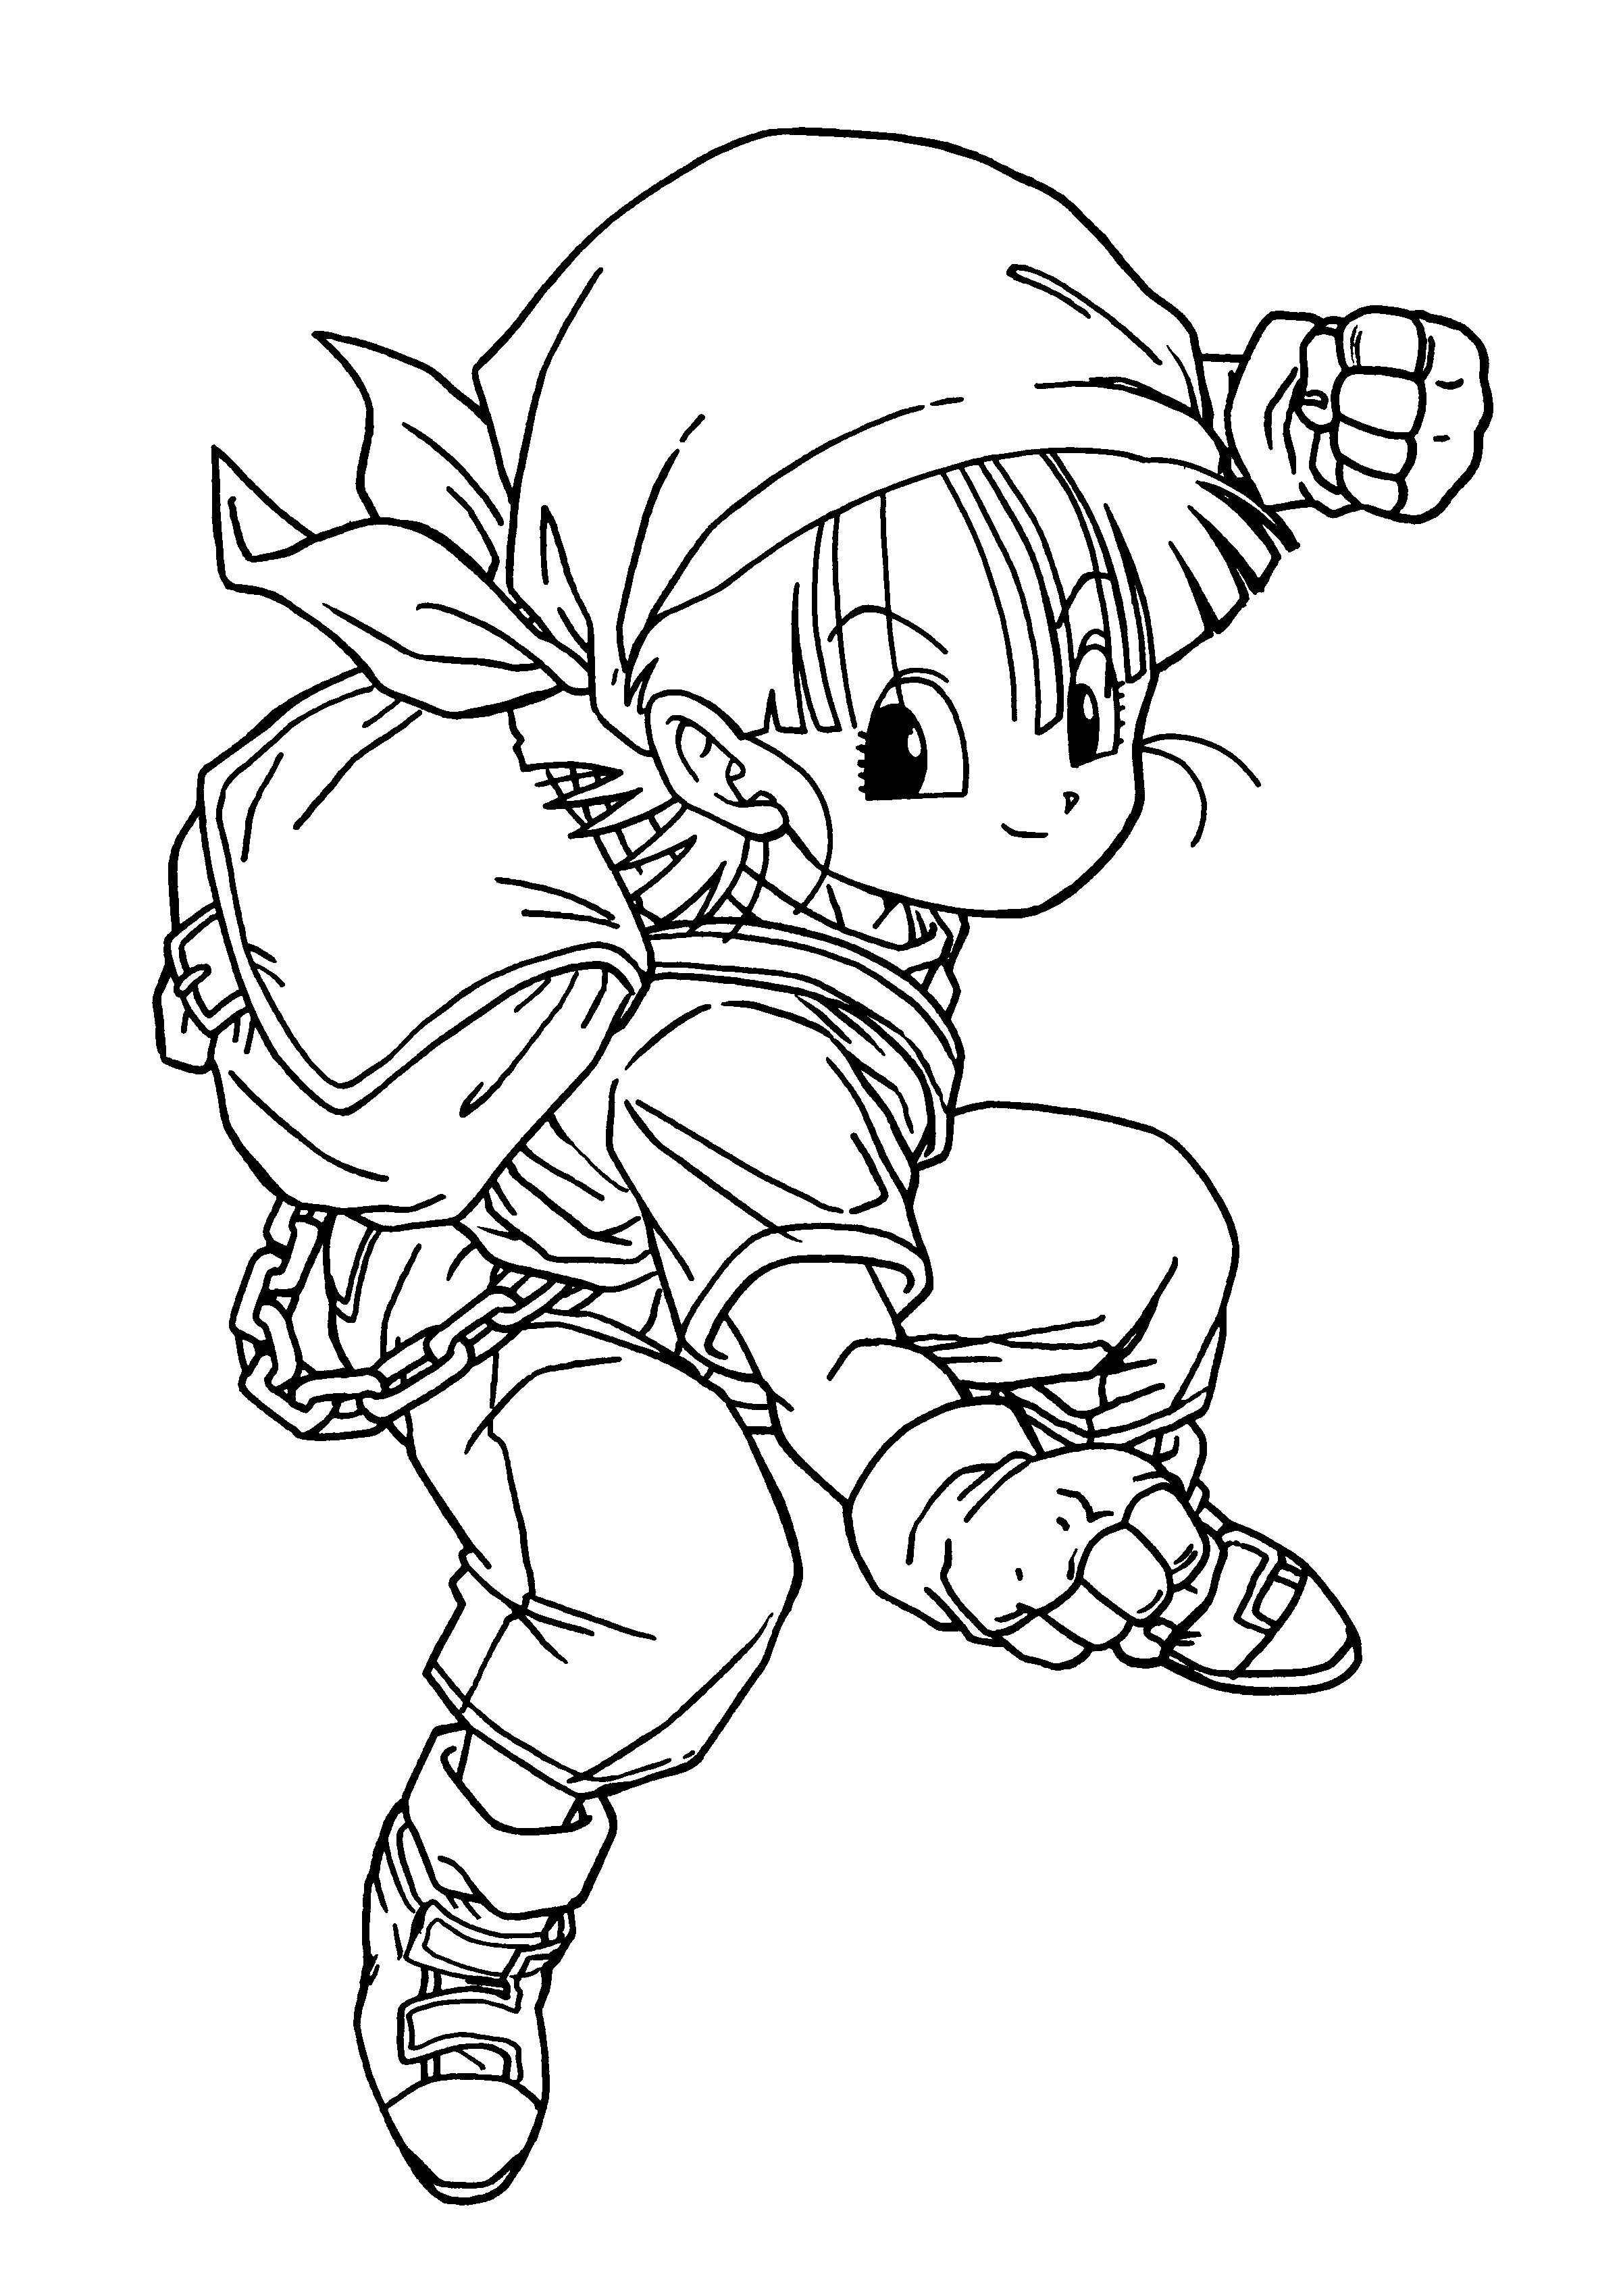 6100 Dbz Coloring Book Online Free Images